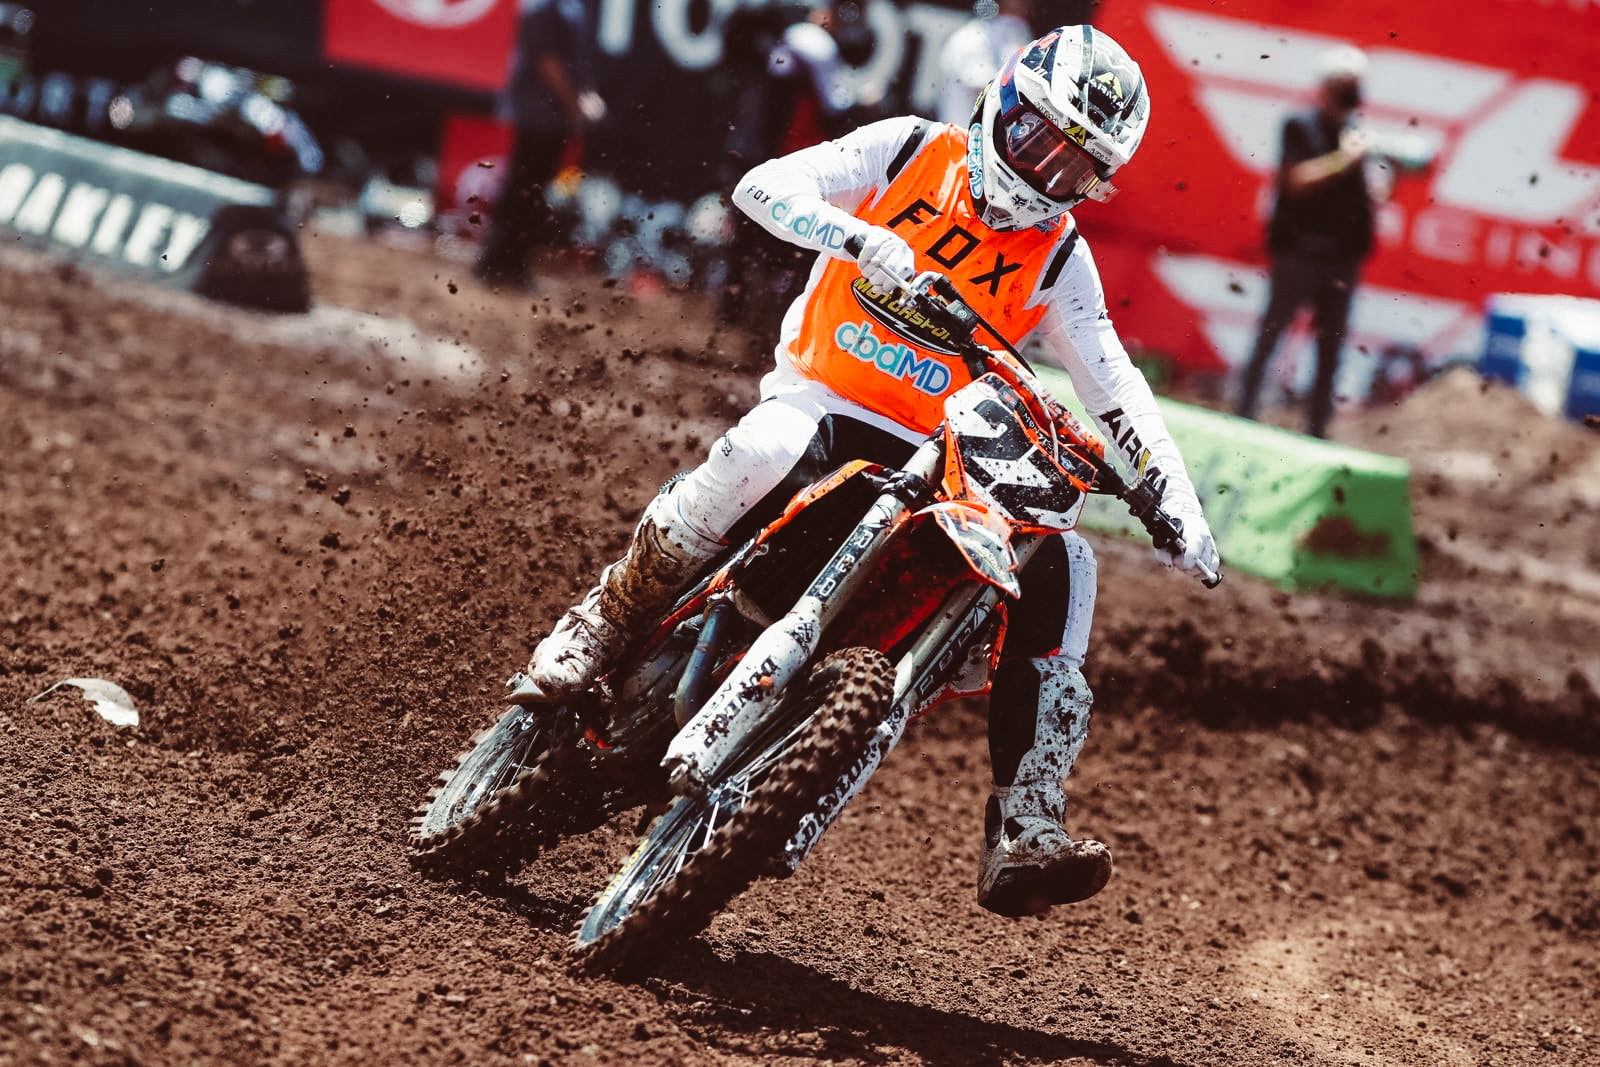 chad reed salary cap